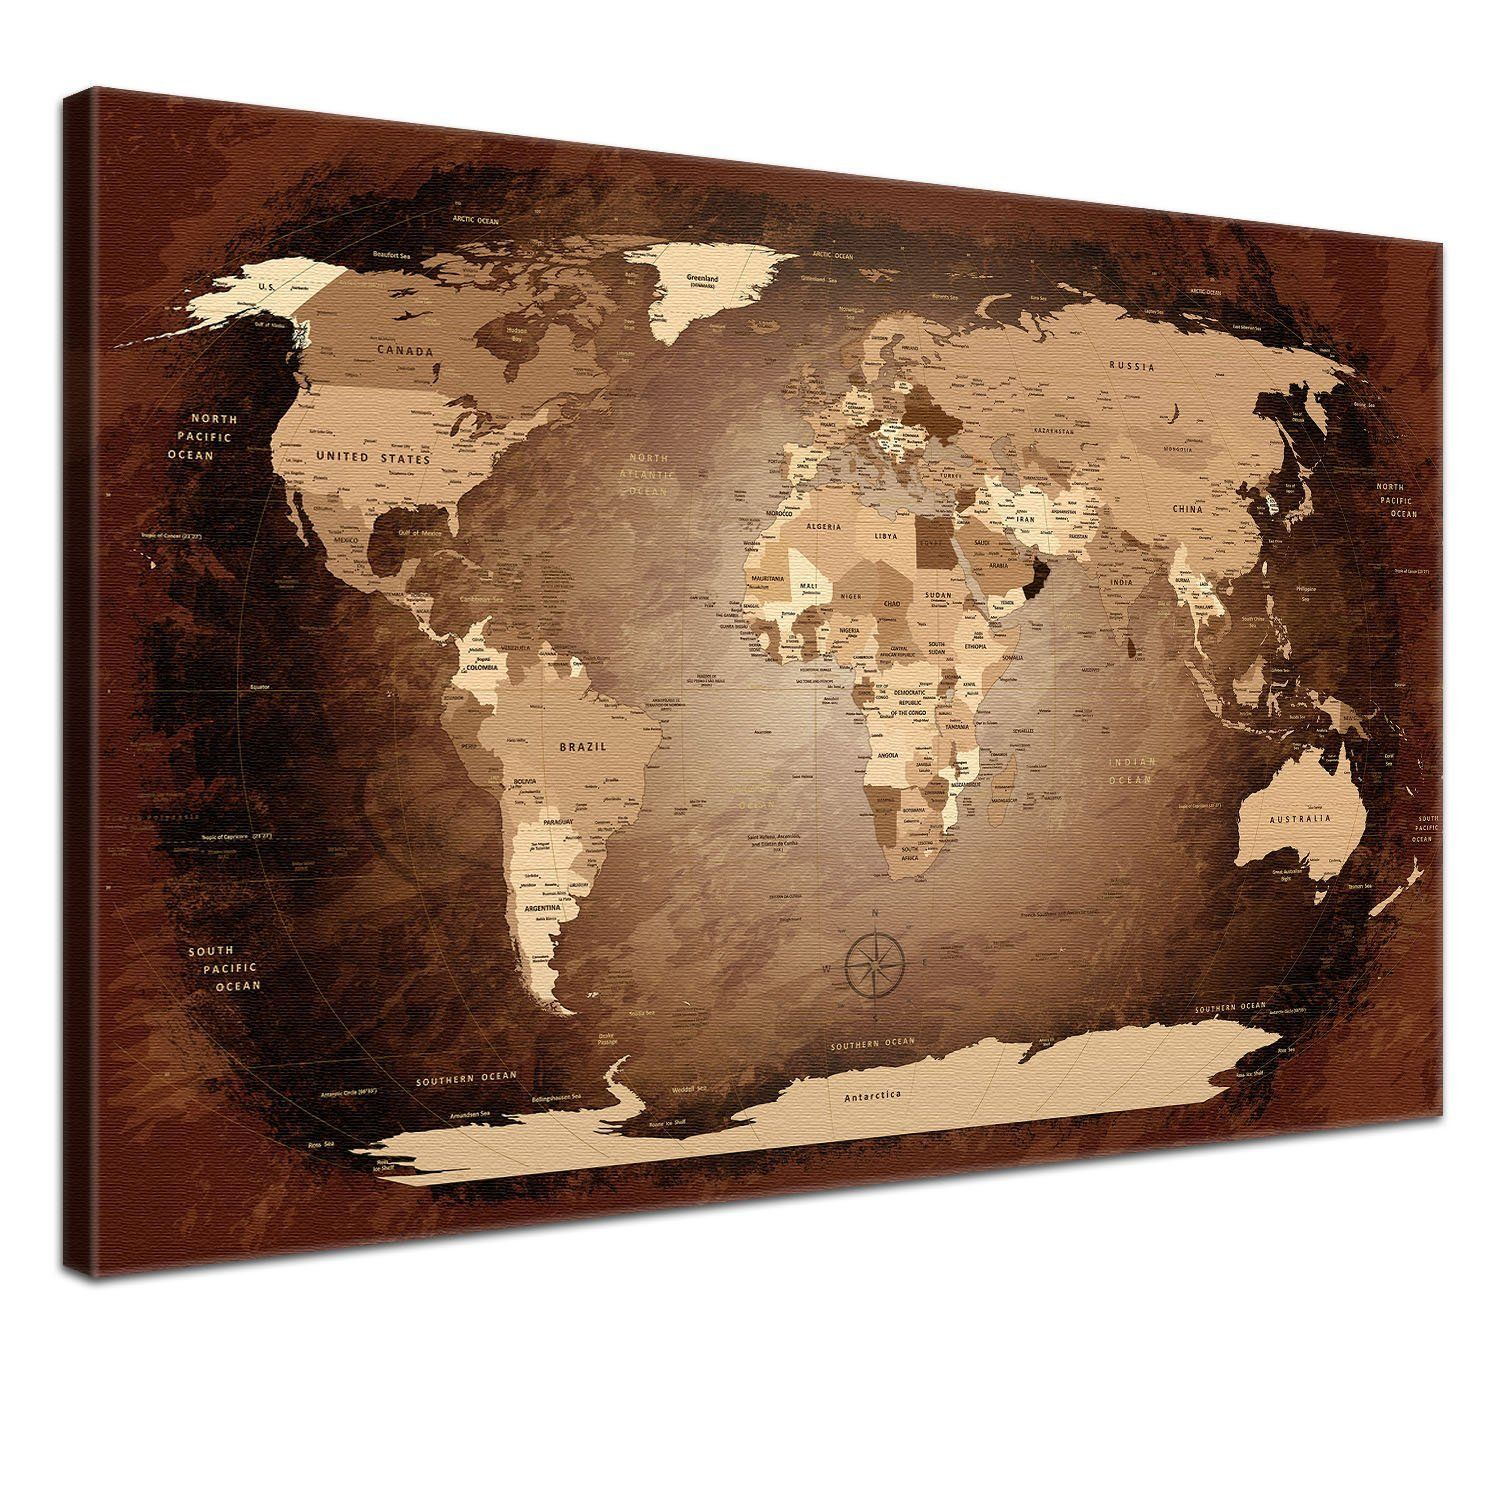 Lanakk world map antique with rear cork board allows drawing pin lanakk world map antique with rear cork board allows drawing pin board world map canvas picture gumiabroncs Gallery